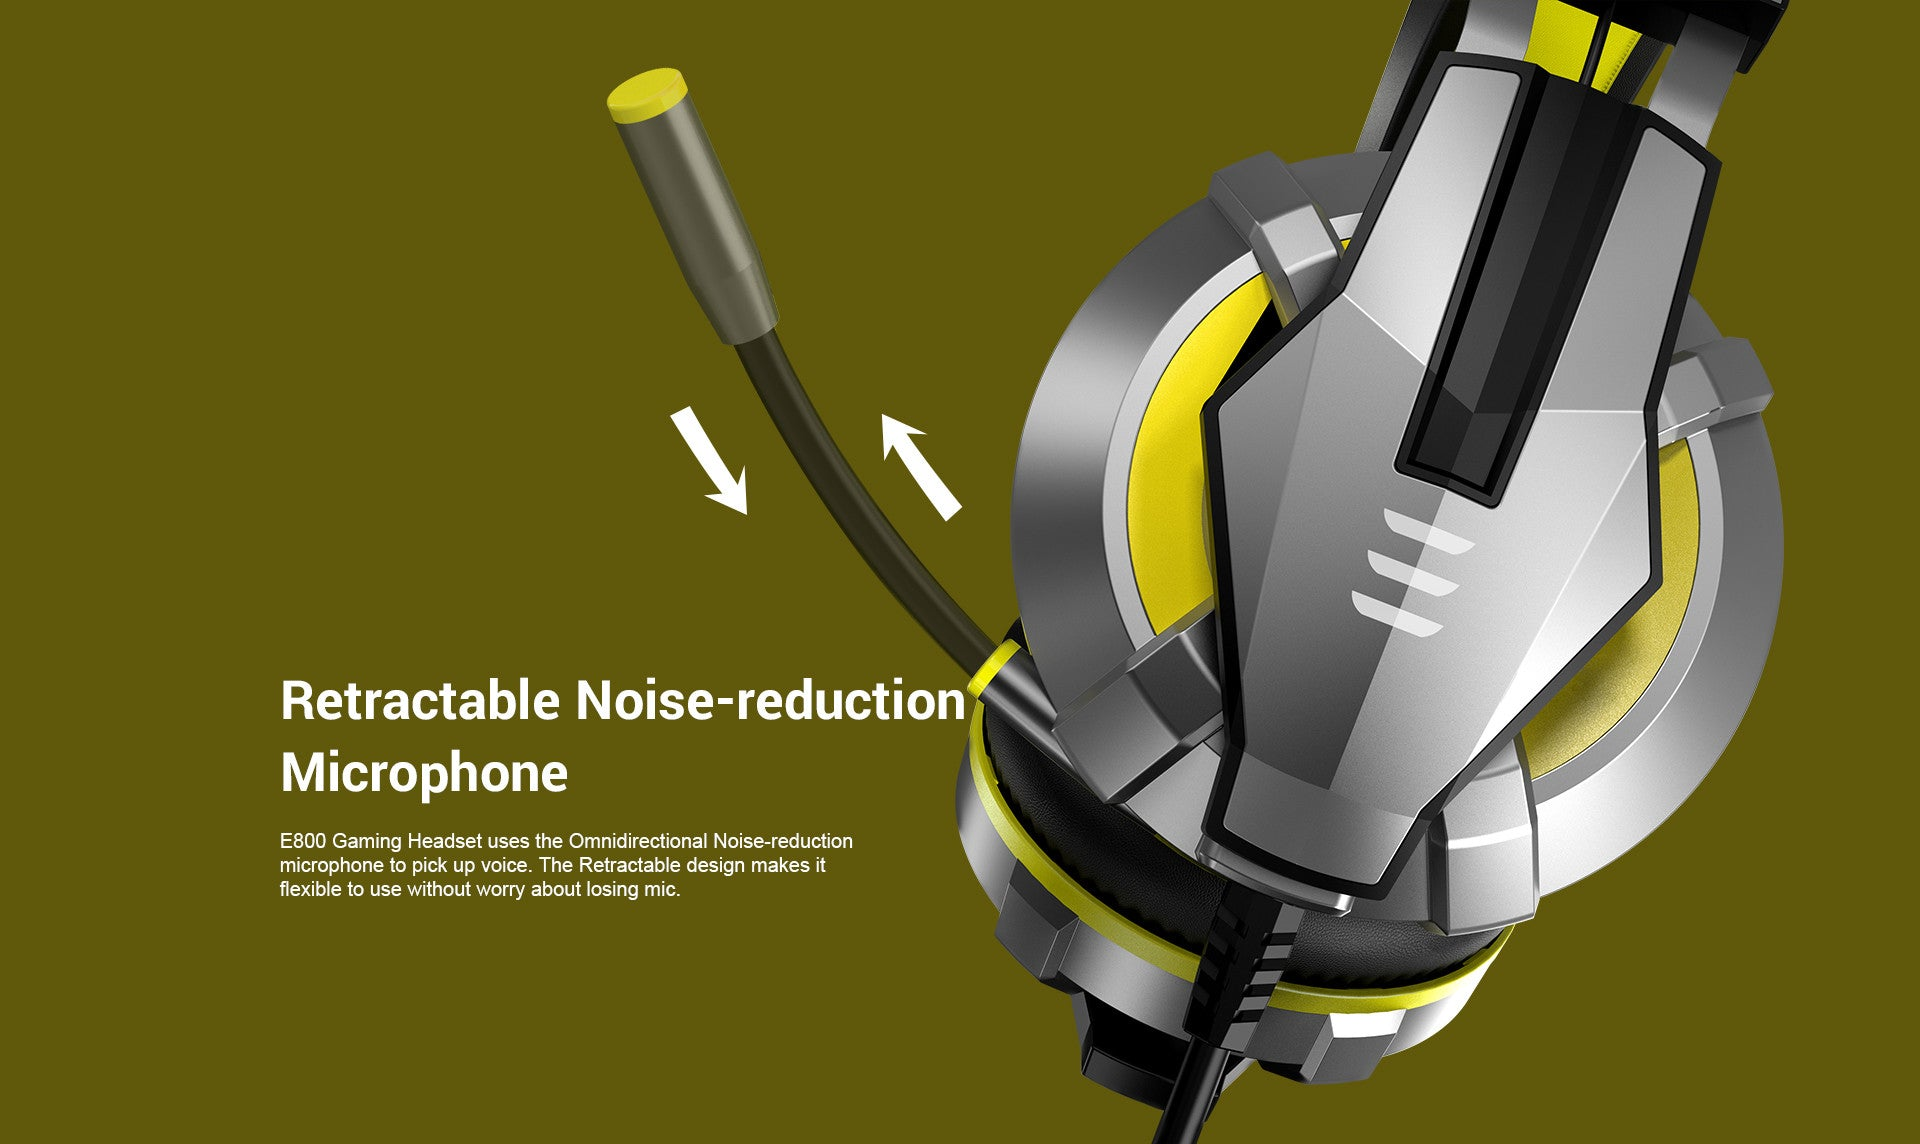 E800 Gaming Headset uses the Omnidirectional Noise-reduction microphone to pick up voice. The Retractable design makes it flexible to use without worry about losing mic.